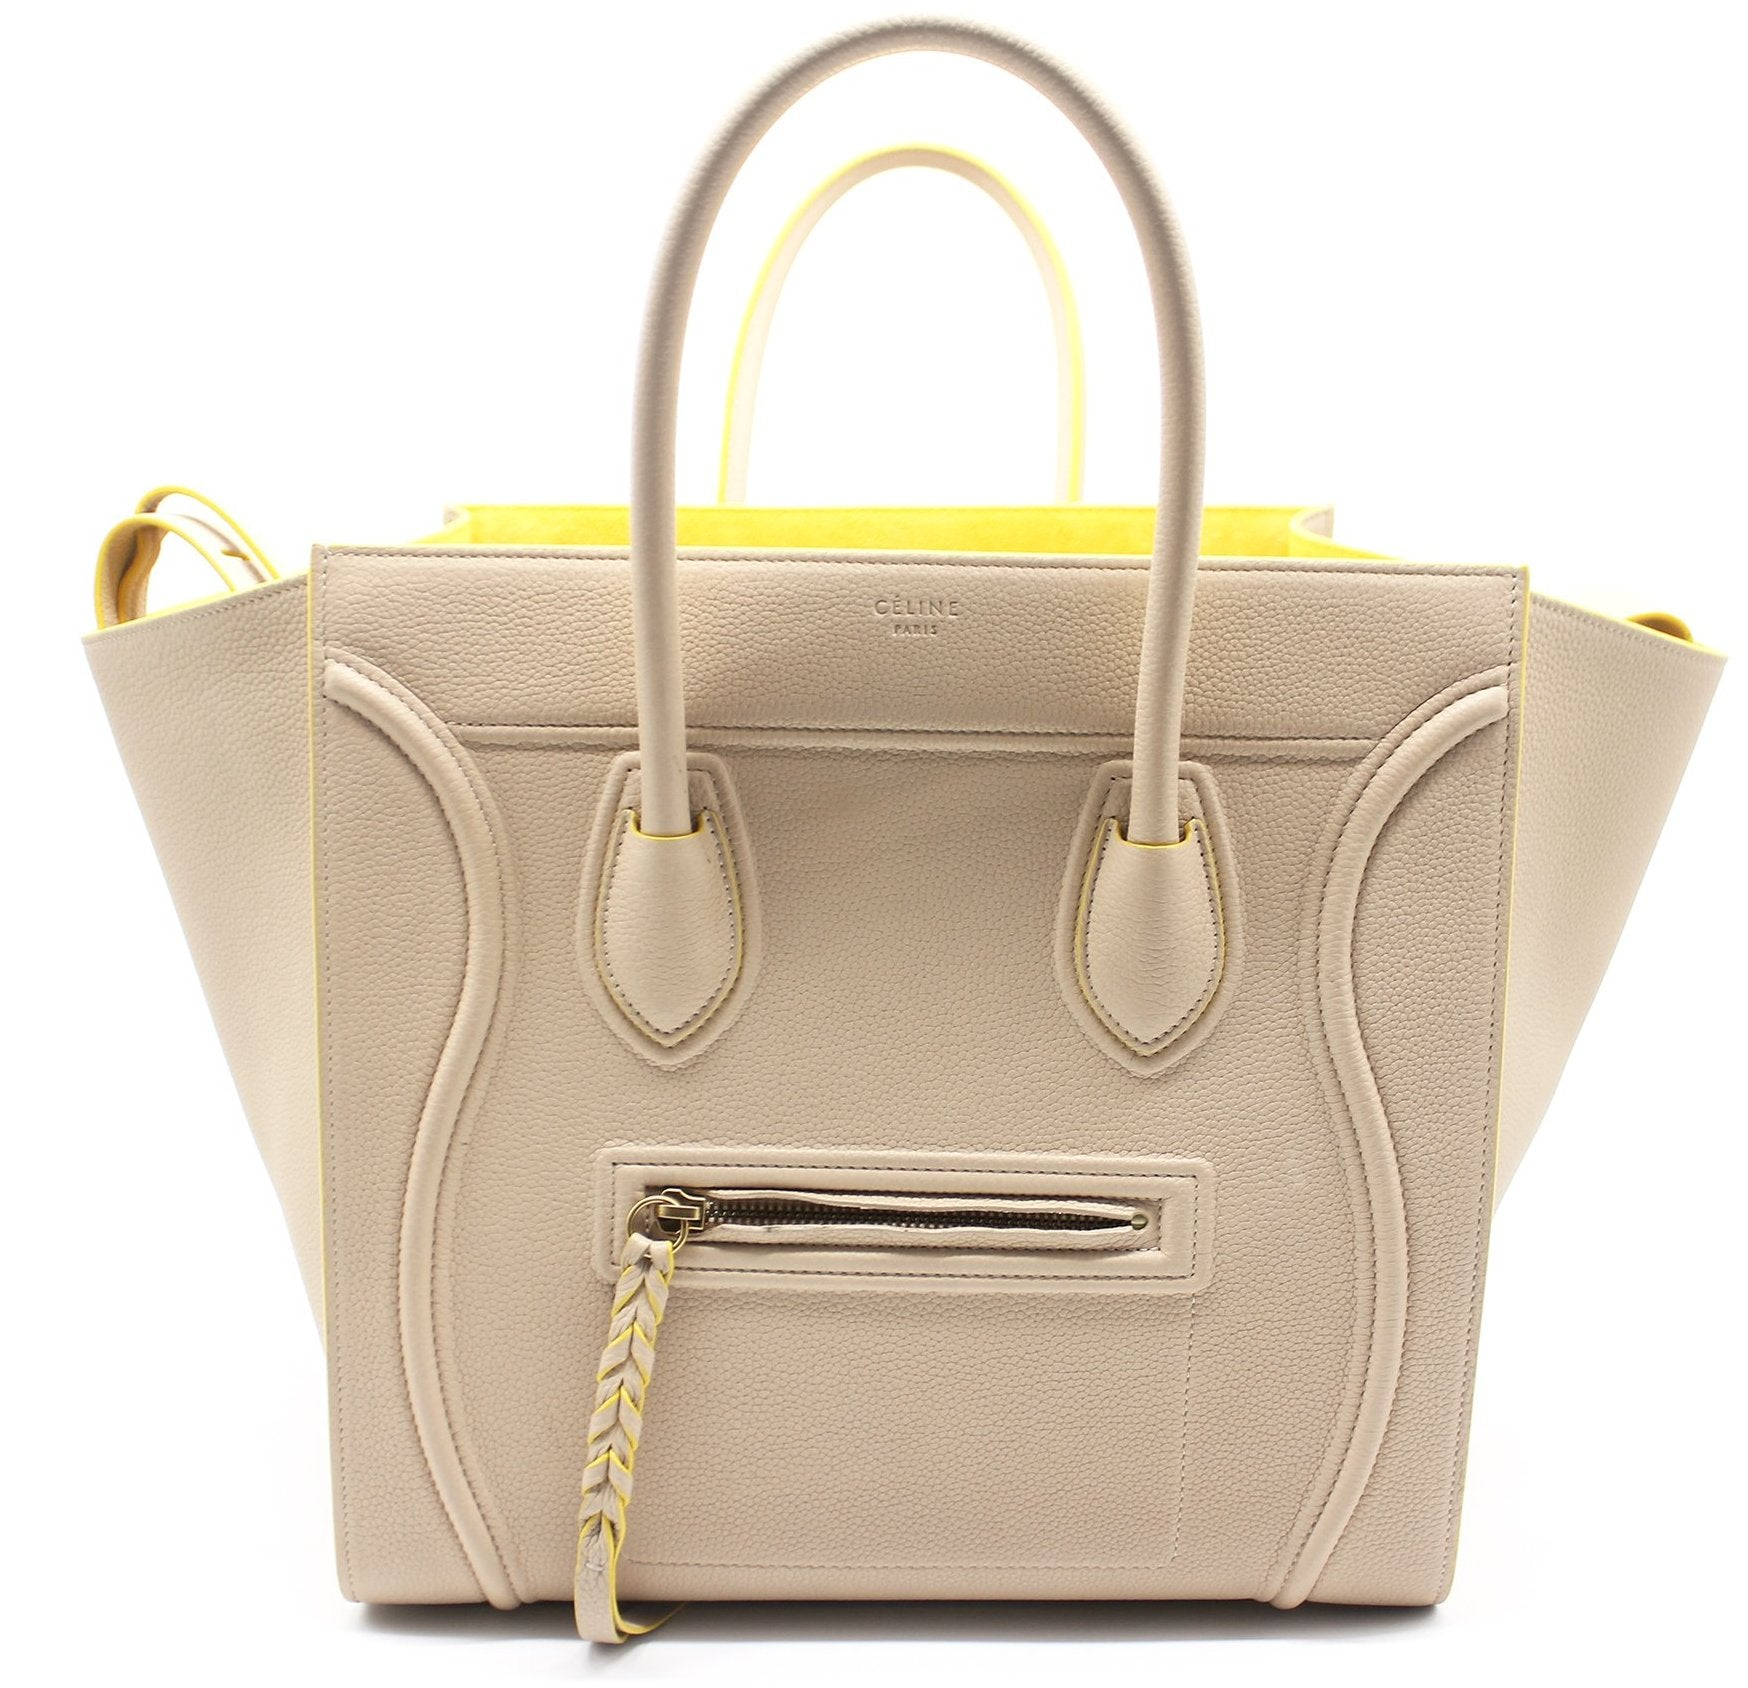 Celine Medium Luggage Phatom Bag in Calfskin